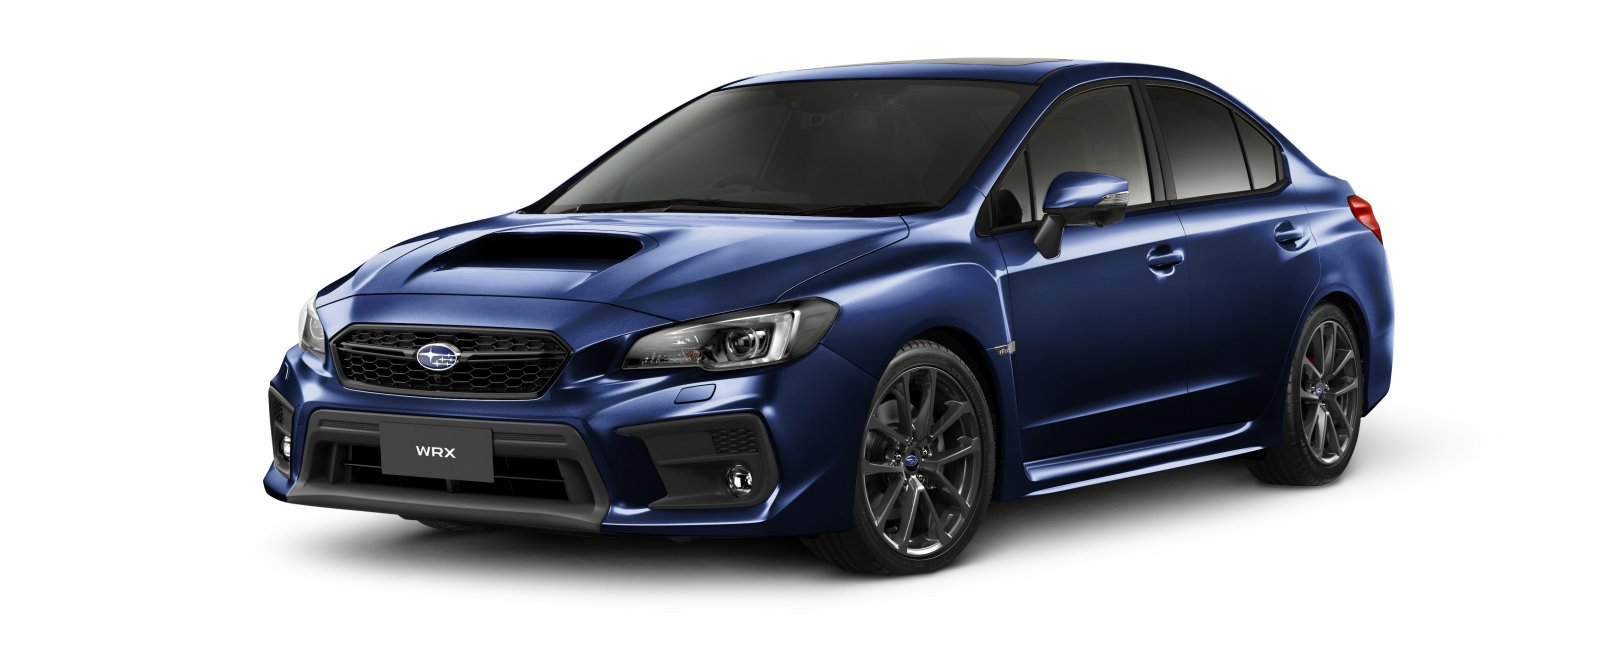 2020 WRX premium in lapis blue